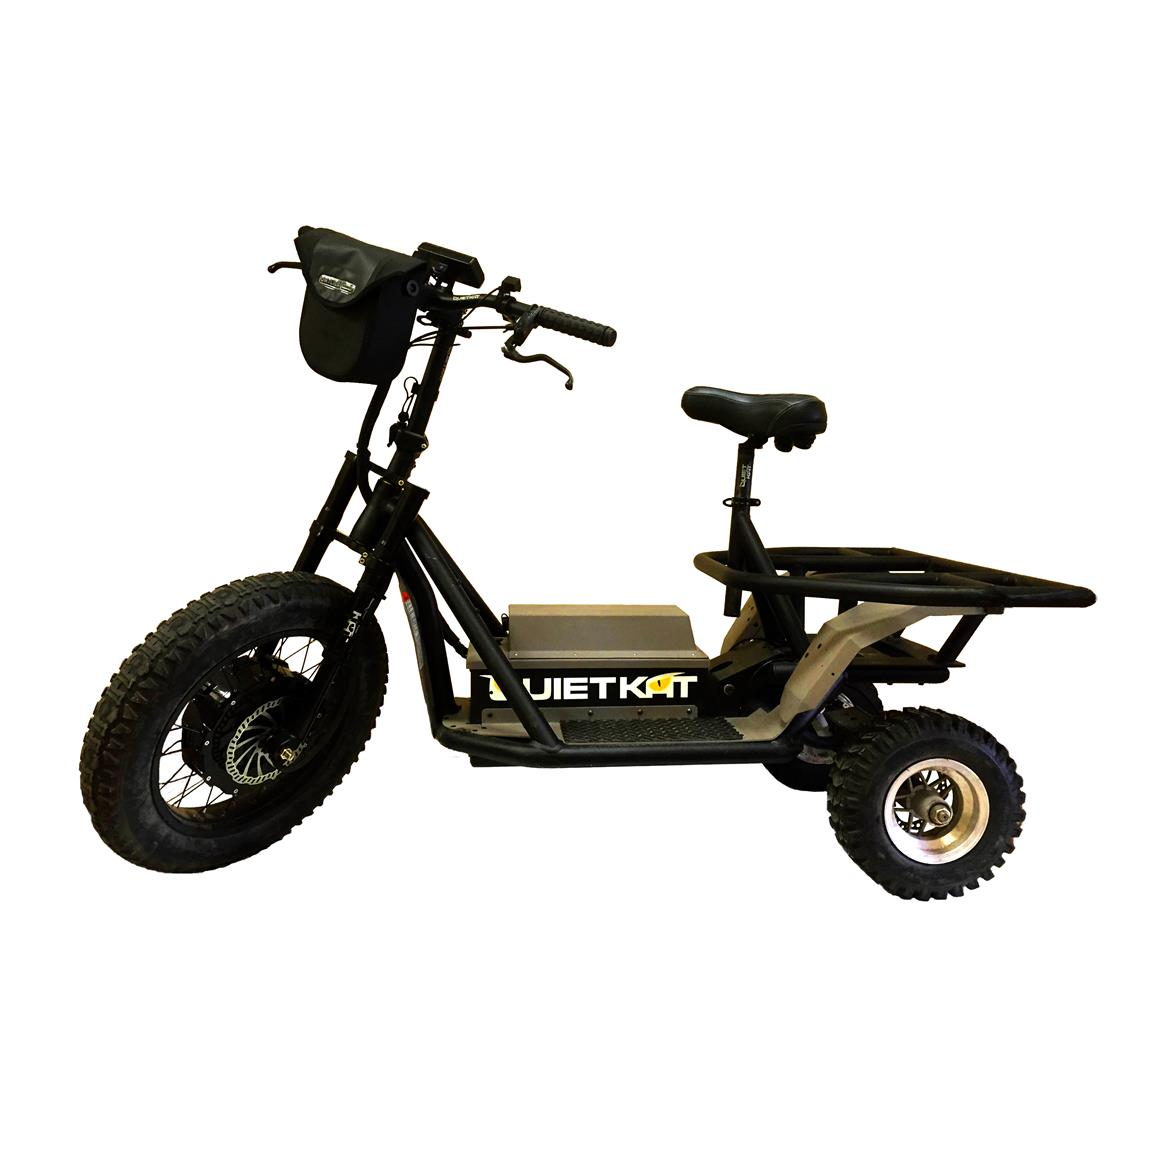 QuietKat Prowler AP-60 Volt Electric All Terrain Vehicle